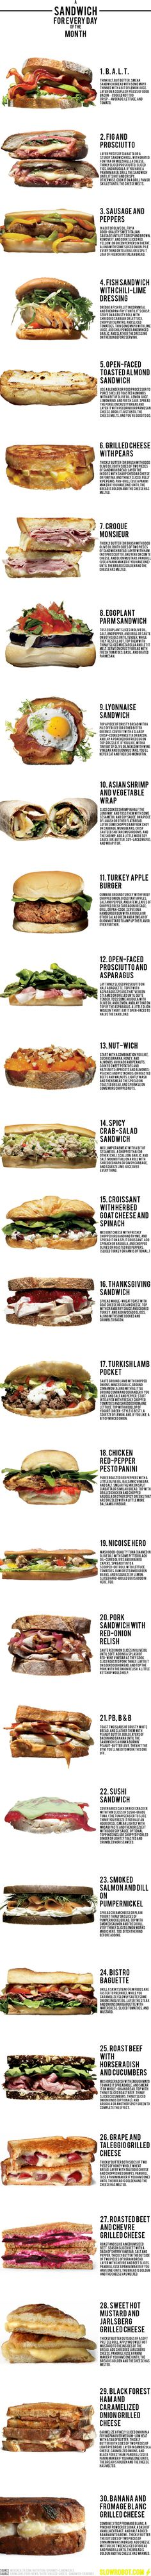 1 sandwich for everyday in the month